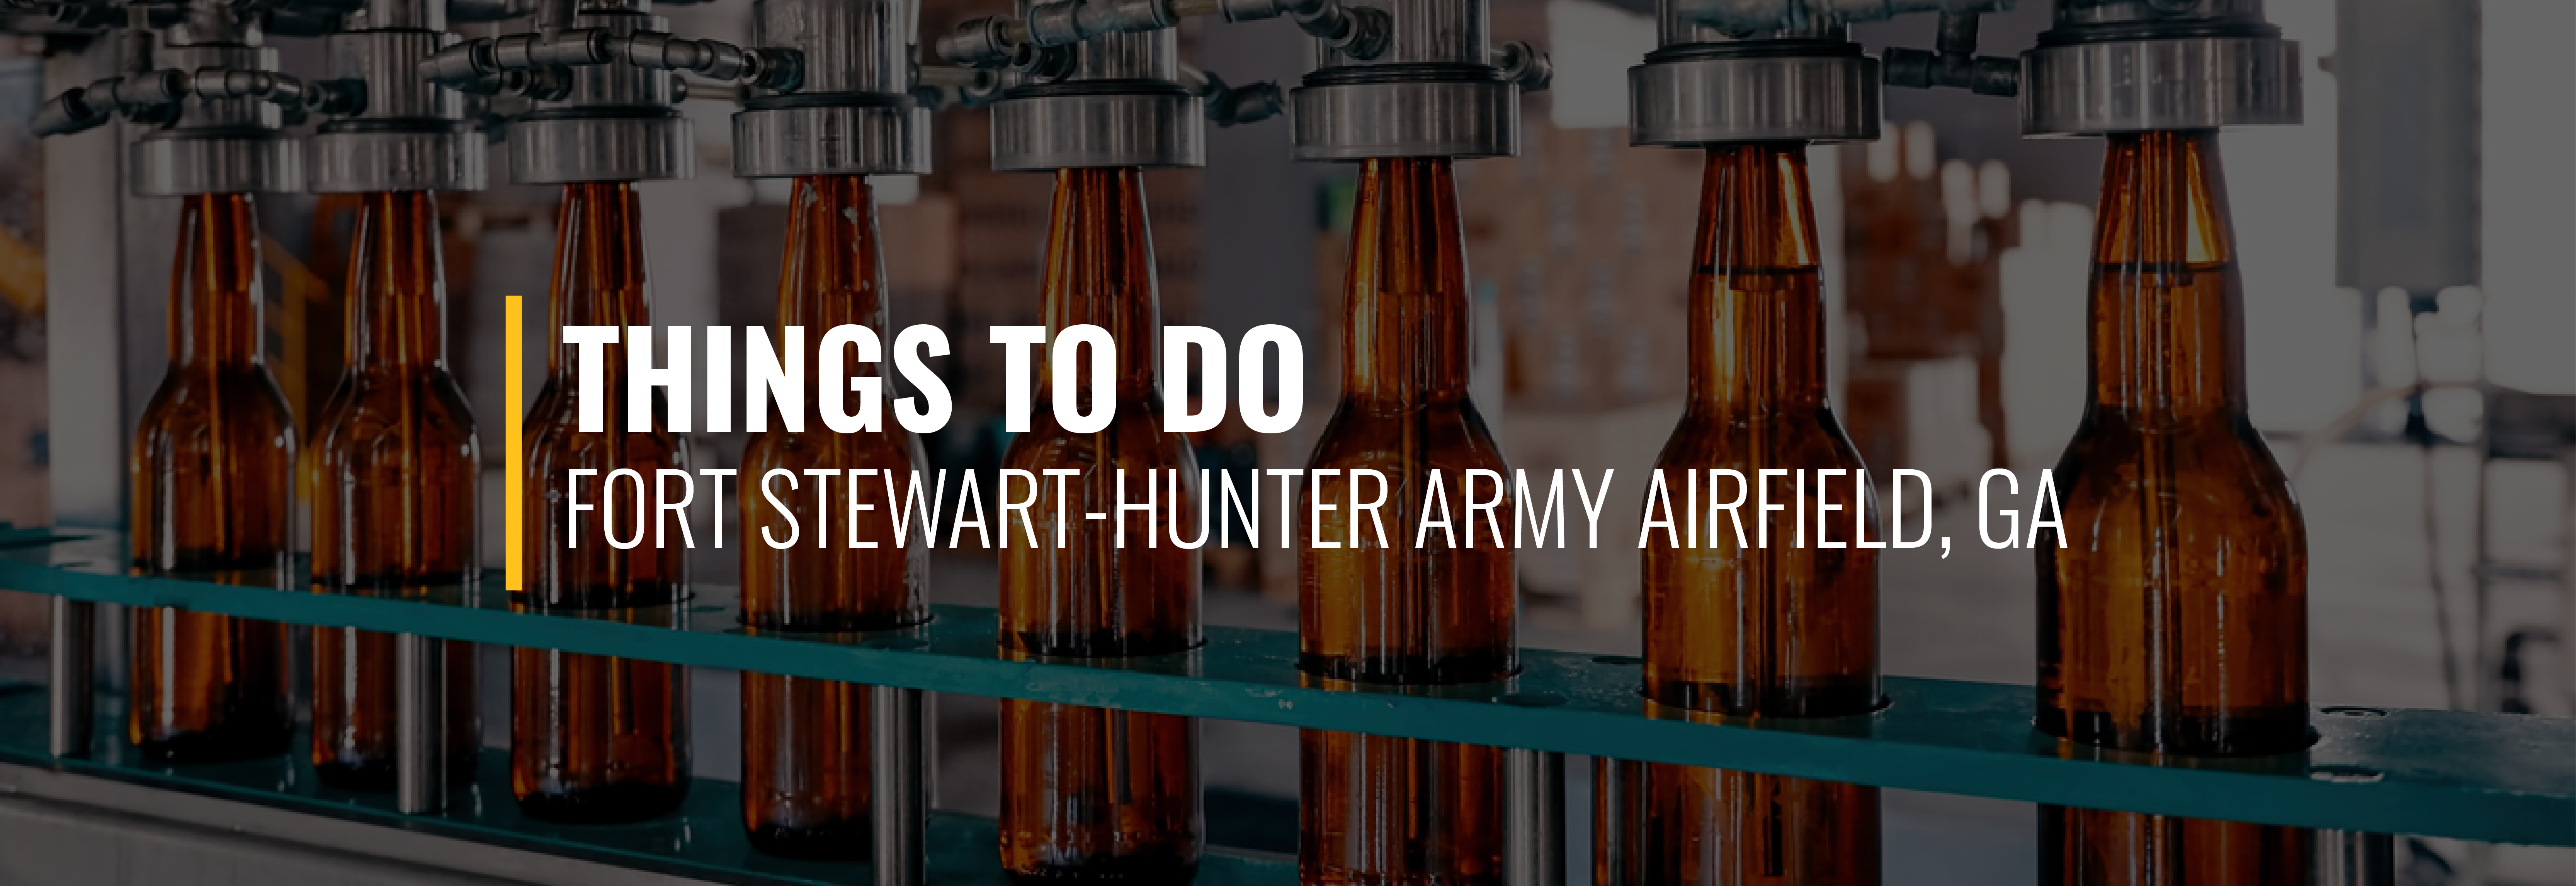 Things to Do Near Fort Stewart-Hunter Army Airfield